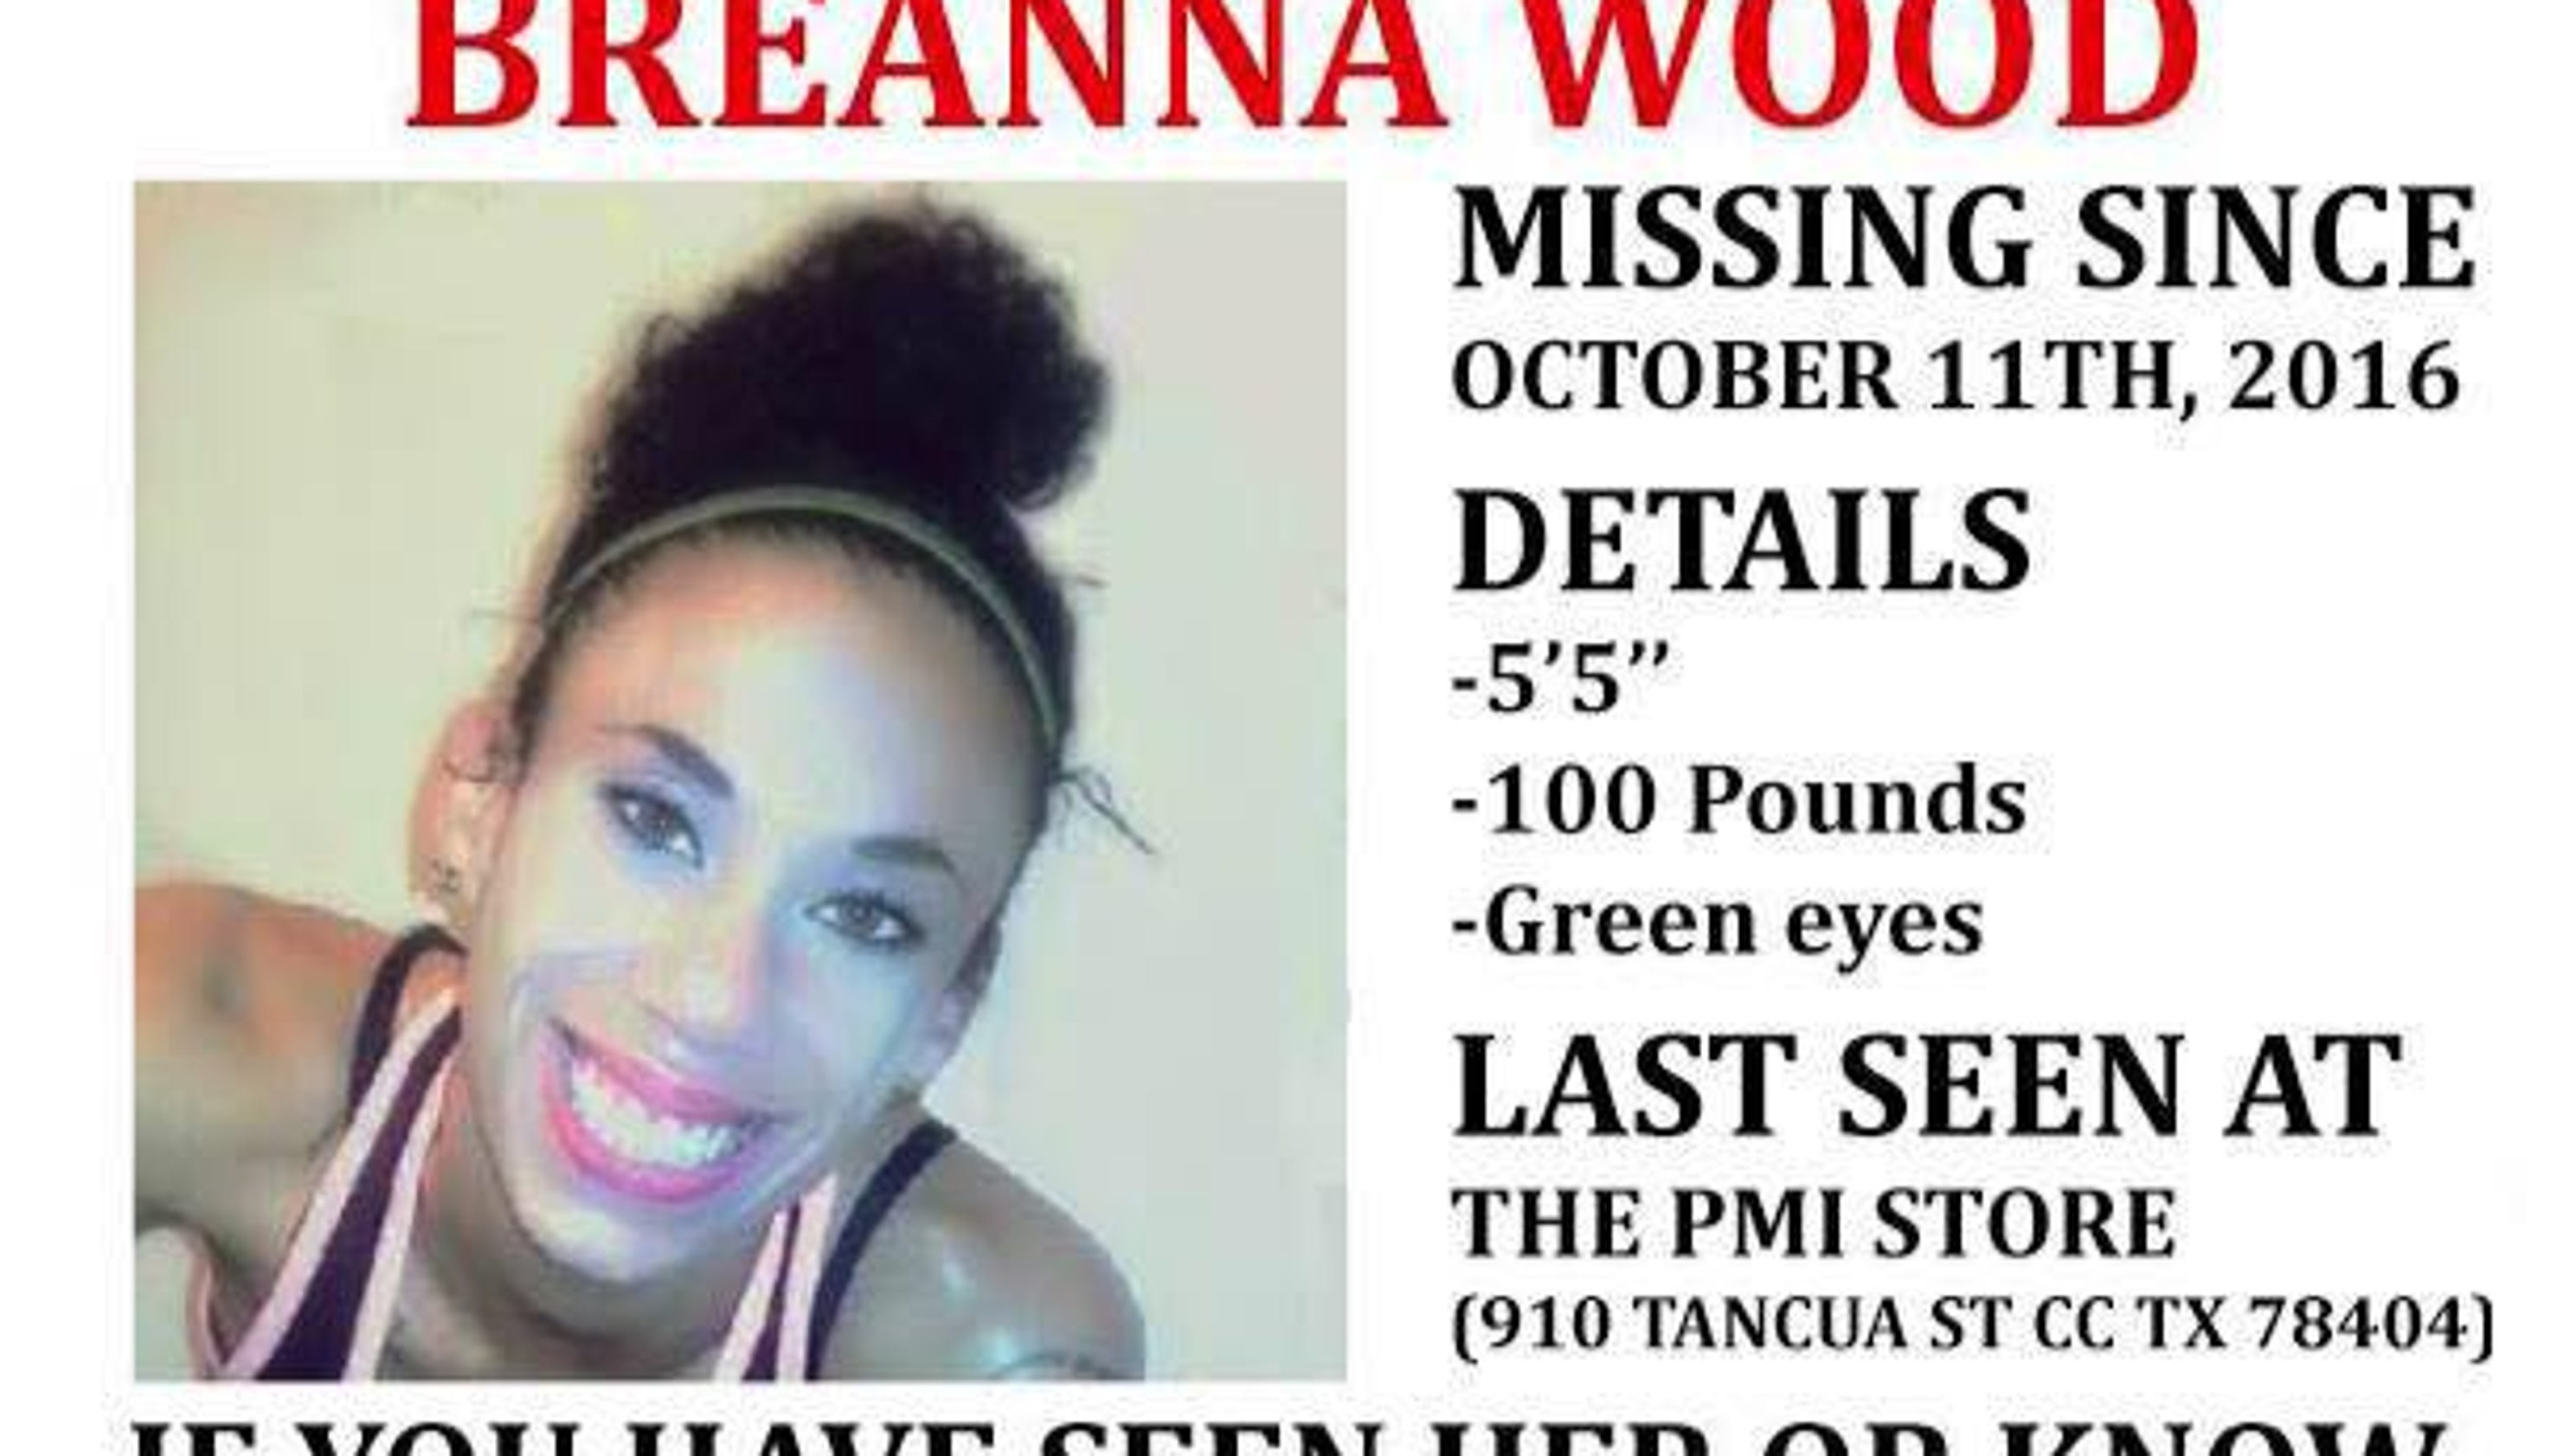 Timeline: The case of Breanna Wood